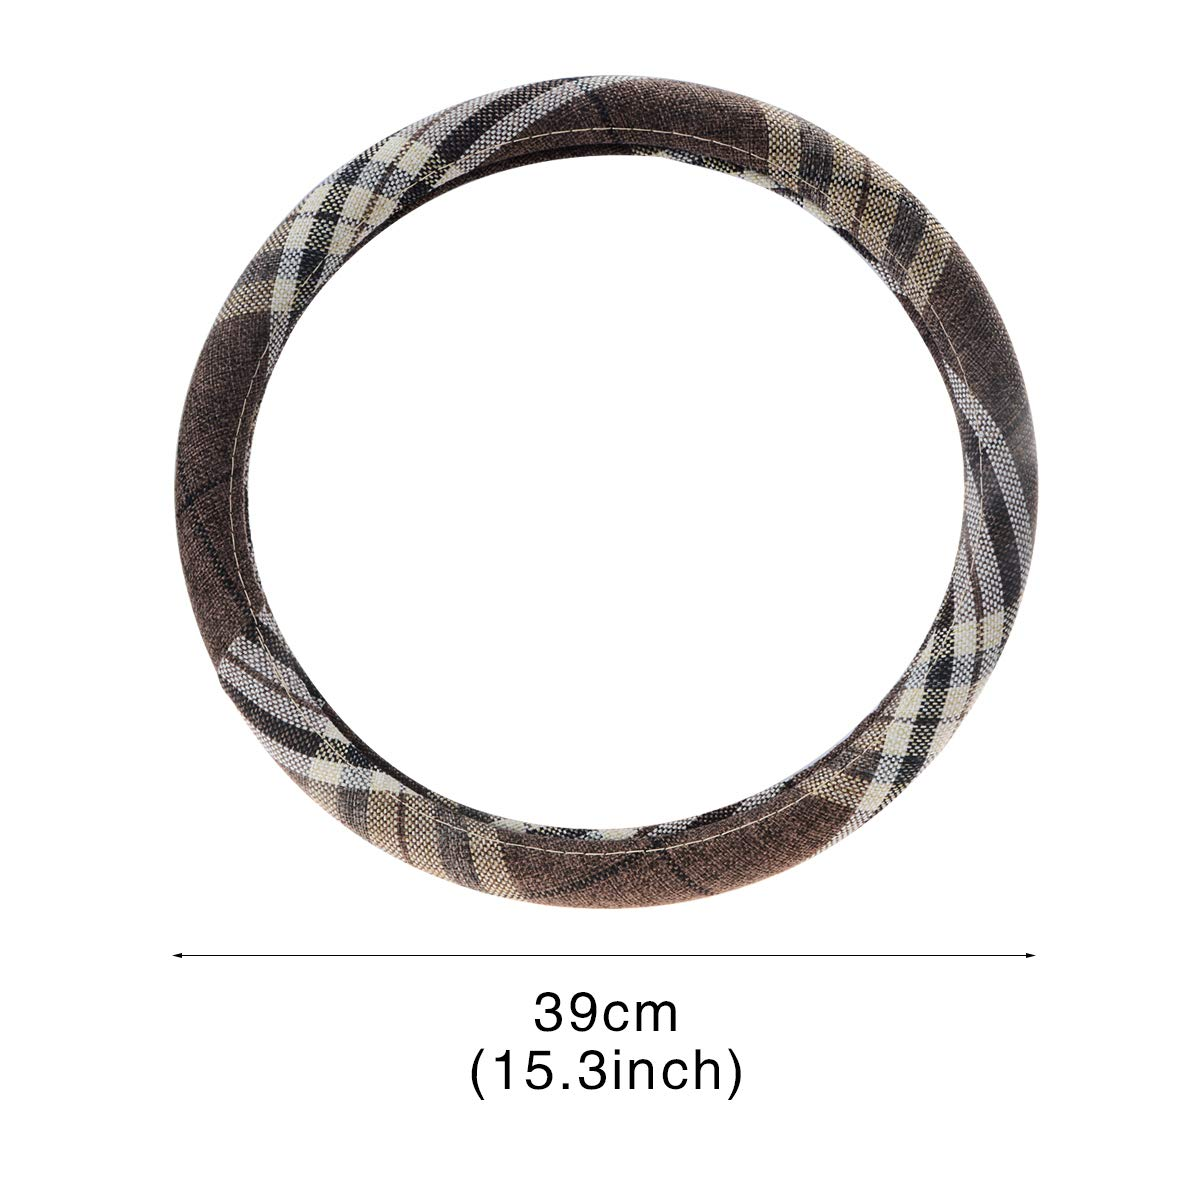 ZYHW Car Steering Wheel Cover Universal Coarse Flax Cloth Auto Anti-Slip Sweat Absorption Steering Wheel Protector Chocolate Brown Style 16inch//39cm